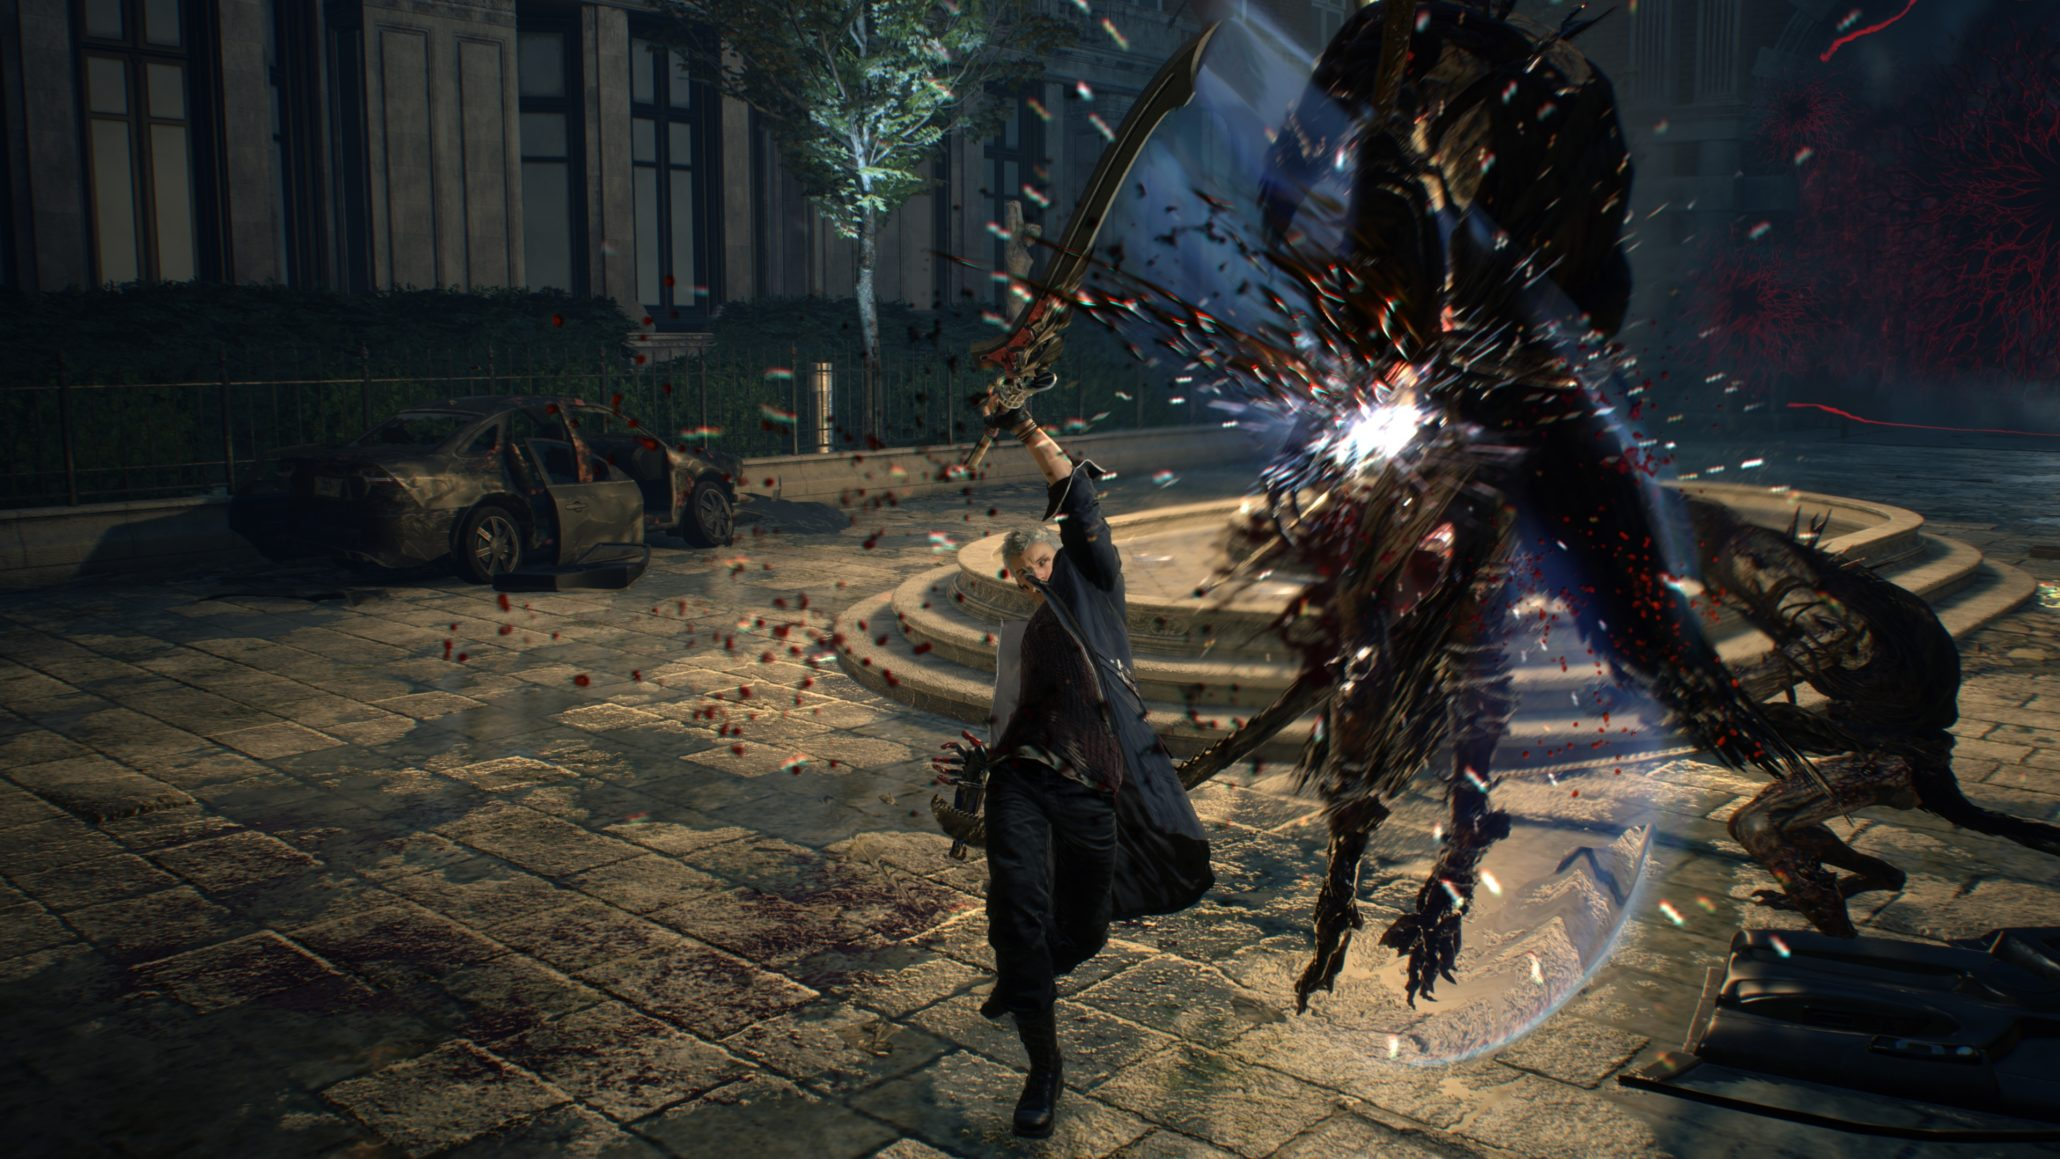 Refreshingly, there are no major DLC plans for Devil May Cry 5 outside of one big free update screenshot